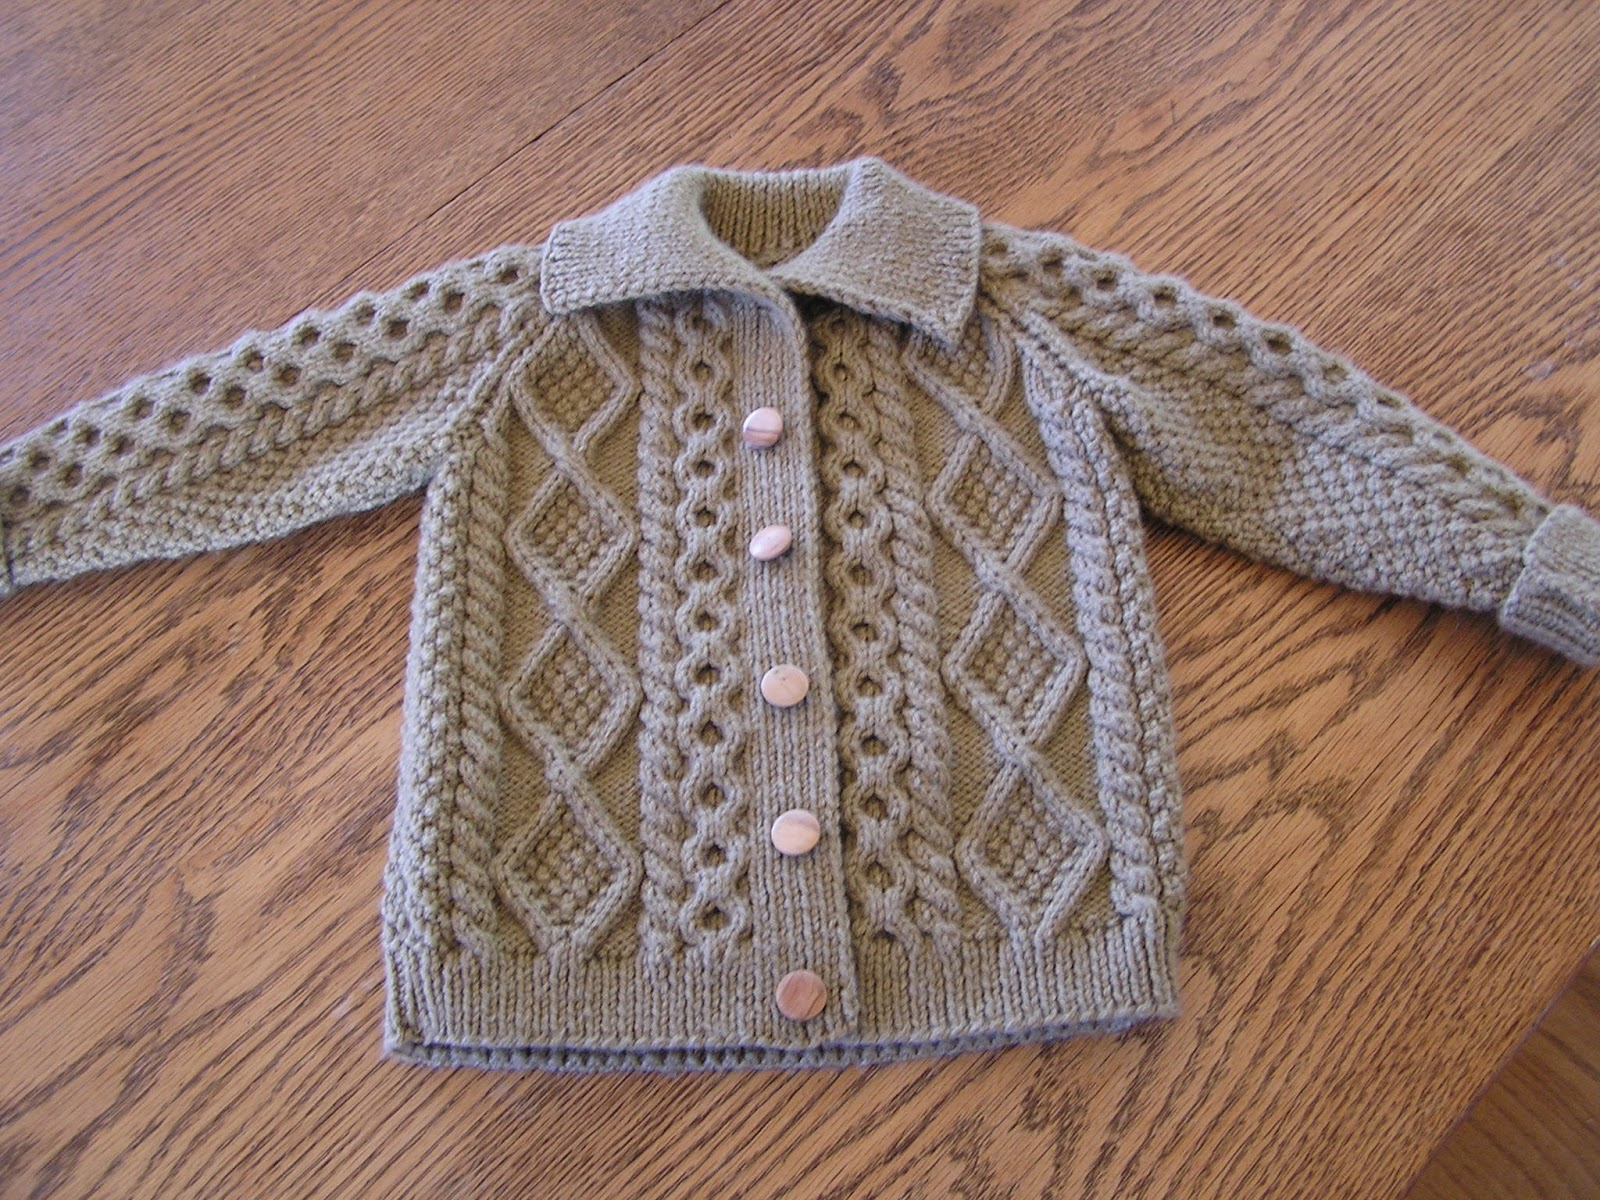 Free Knitting Pattern Baby Cable Cardigan : Cable Cardigan Sweater Knitting Pattern - Long Sweater Jacket